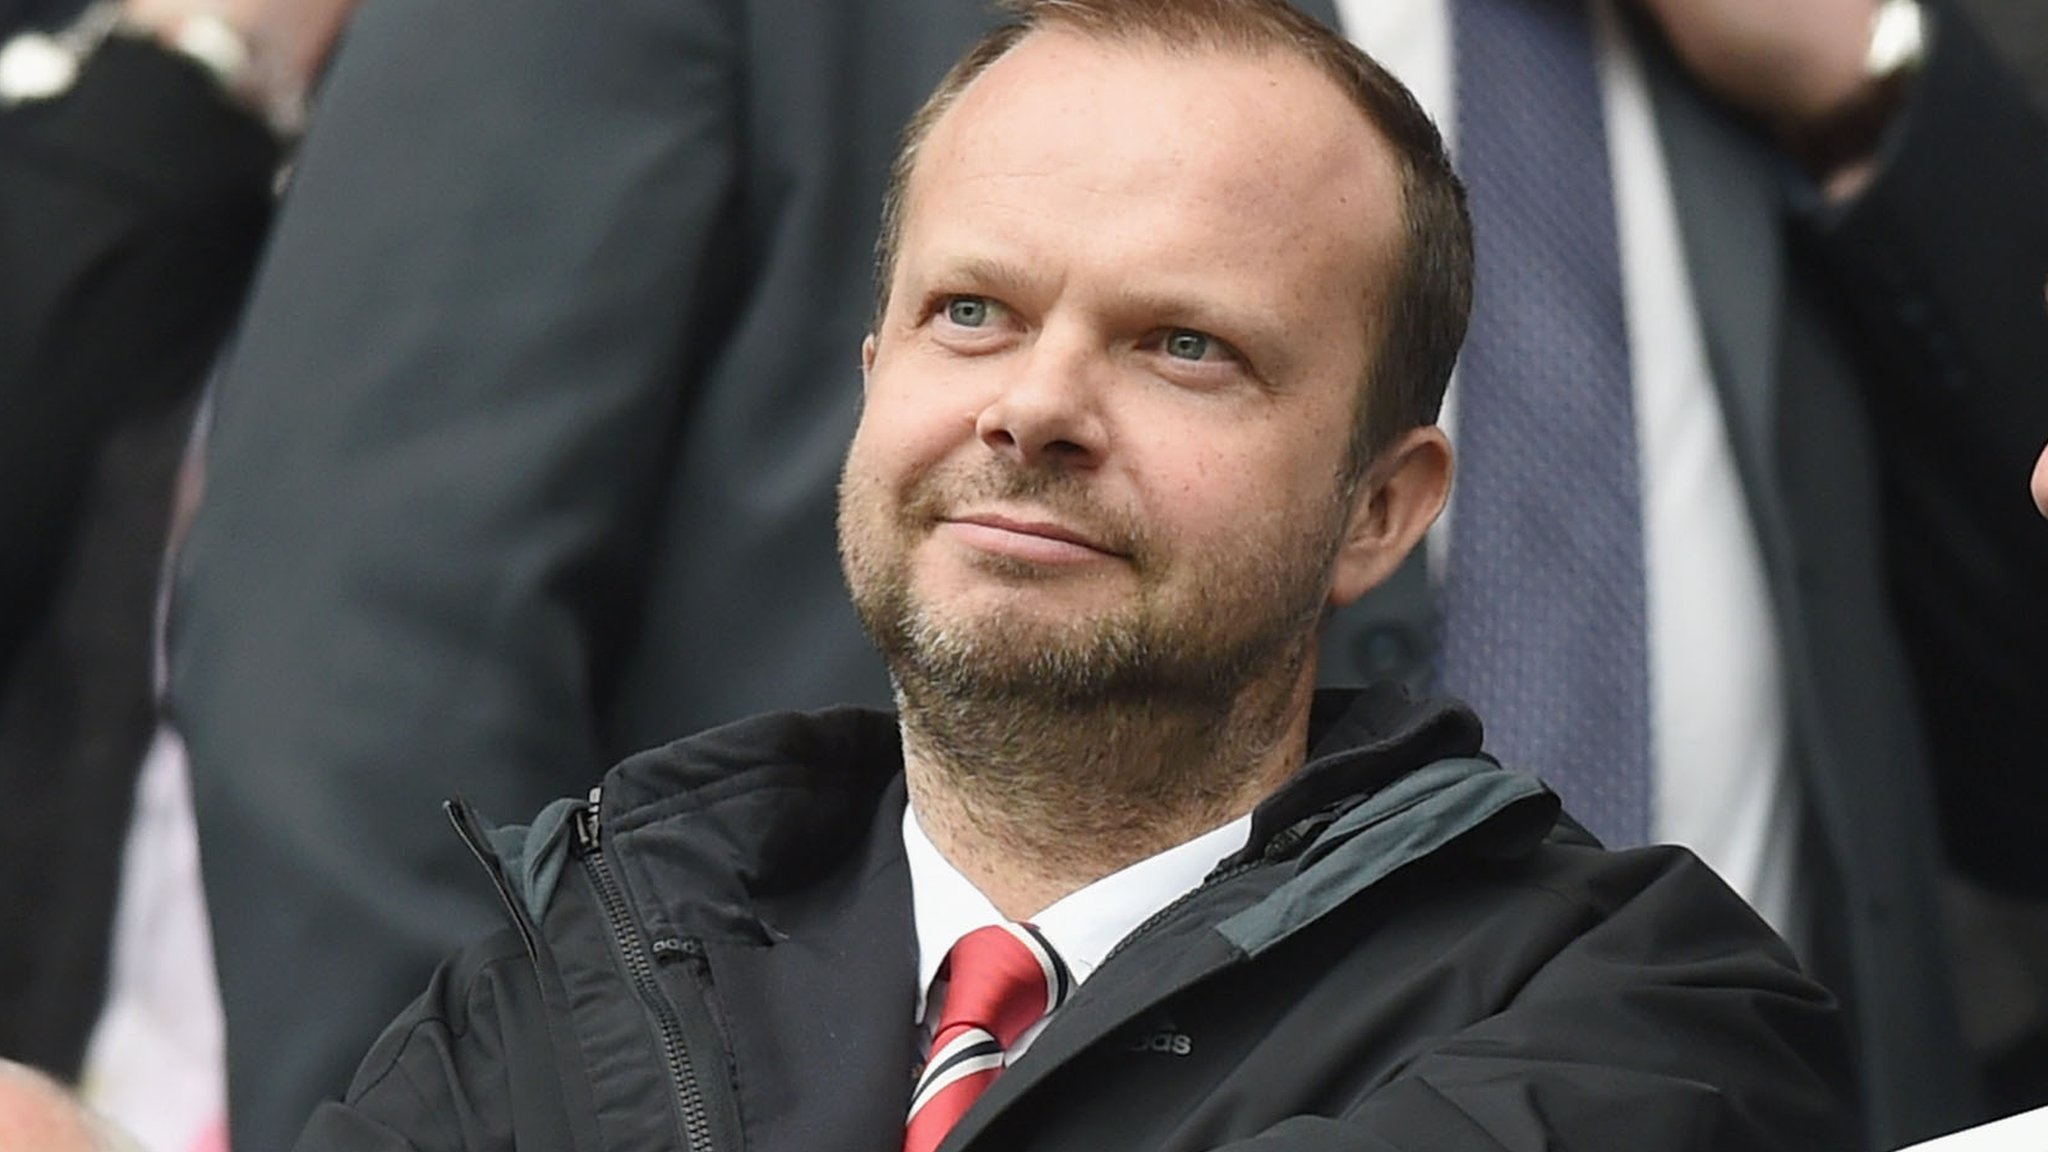 Man Utd expect Facebook & Amazon bids for Premier League rights